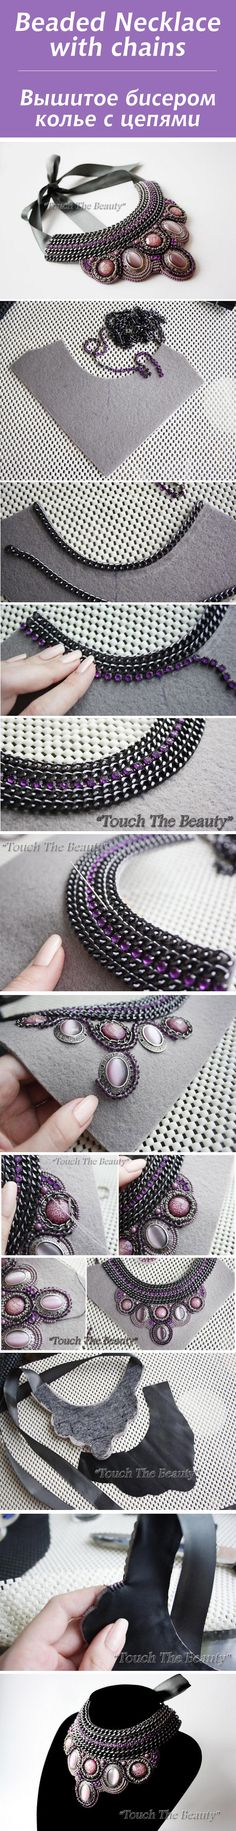 Beaded Necklace with chains #bead #tutorial